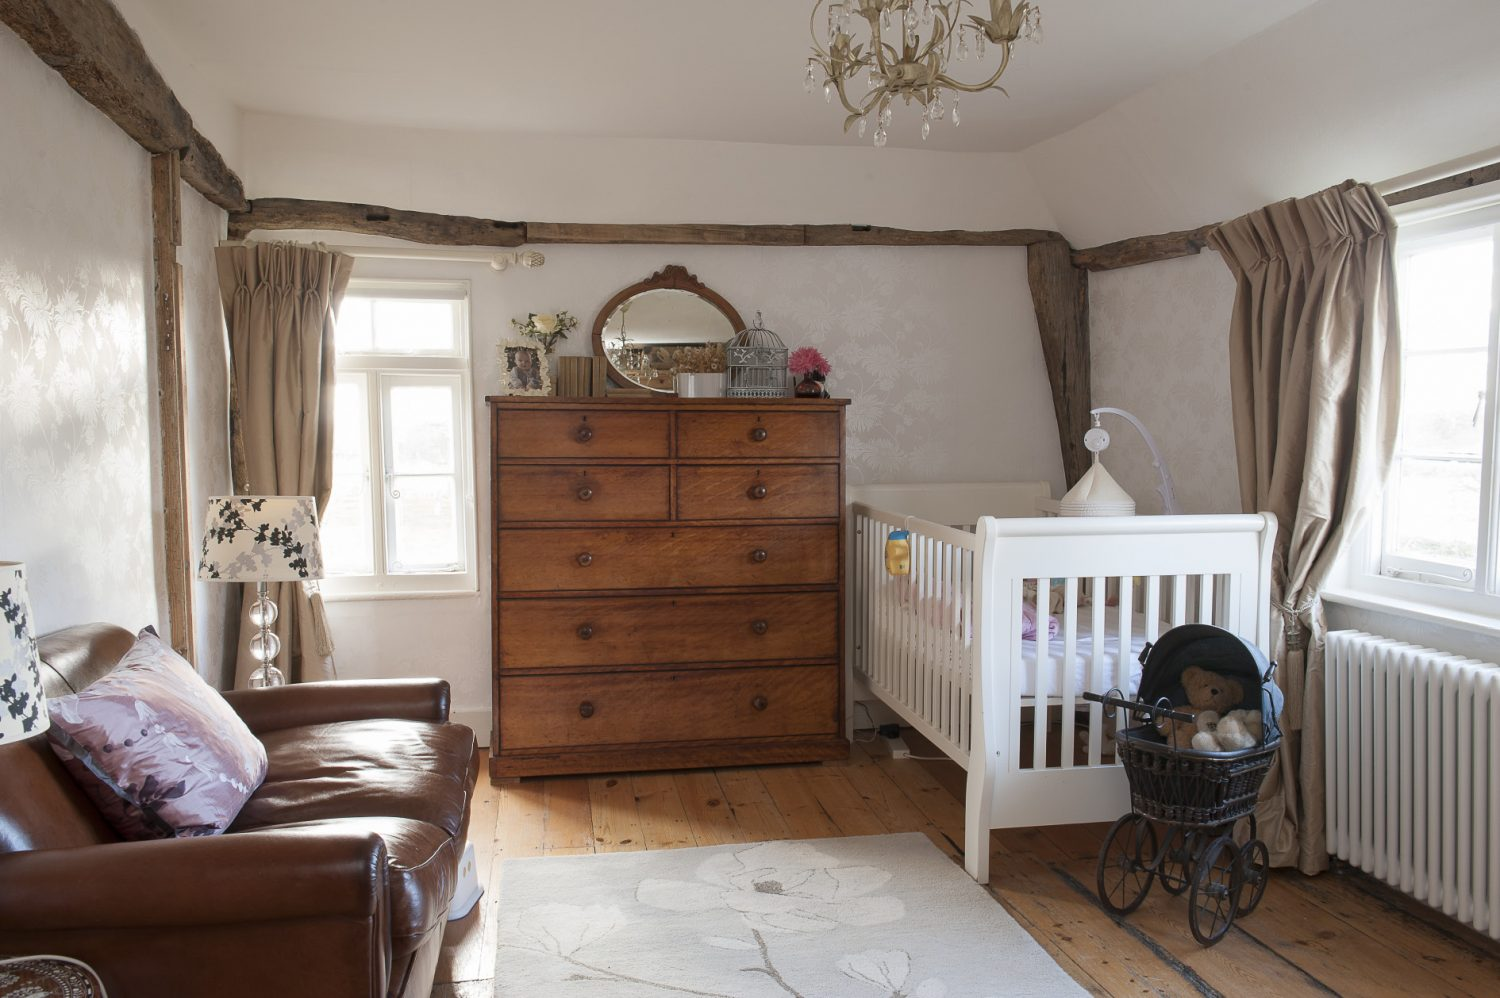 The guest bedroom along with daughters Grace and Ella's rooms all feature curtains made by Charlotte from Laura Ashley fabric